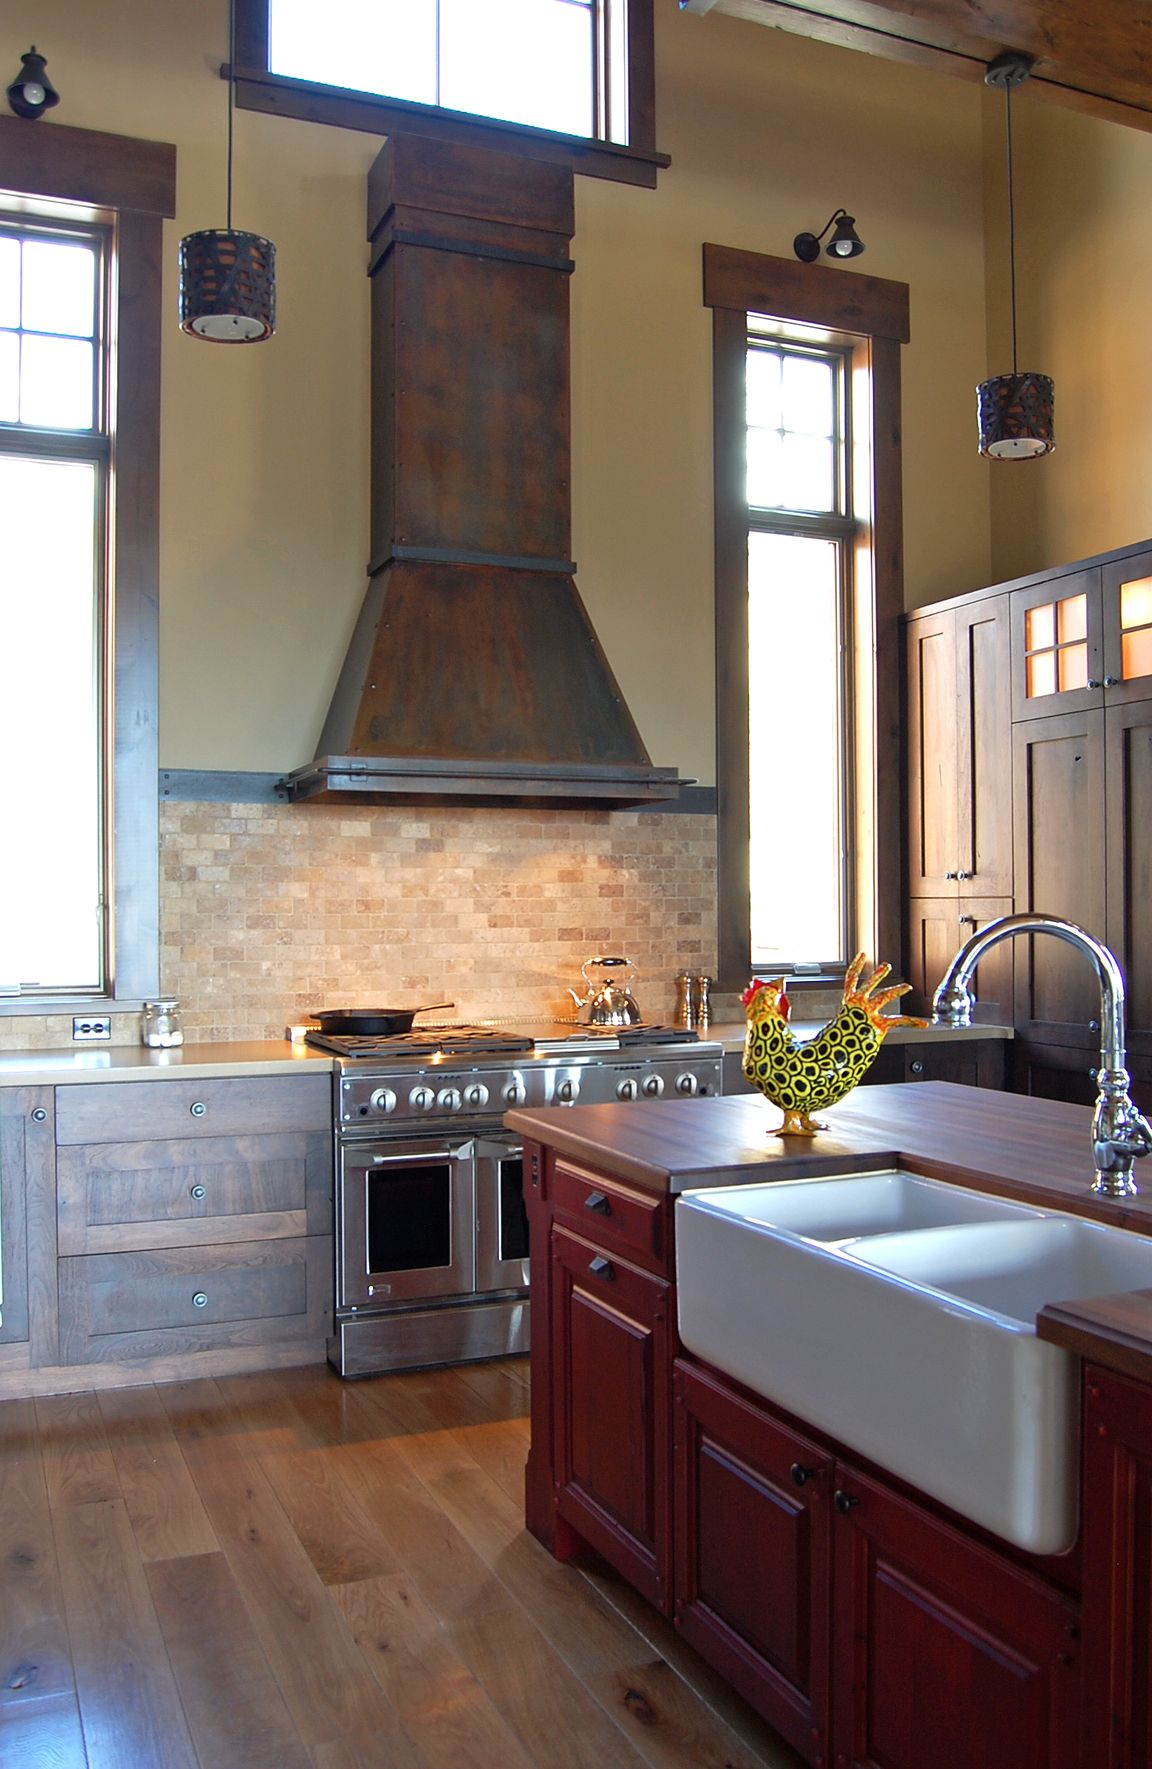 Gallery Range Hoods Kitchens Handcrafted Metal By Raw Urth